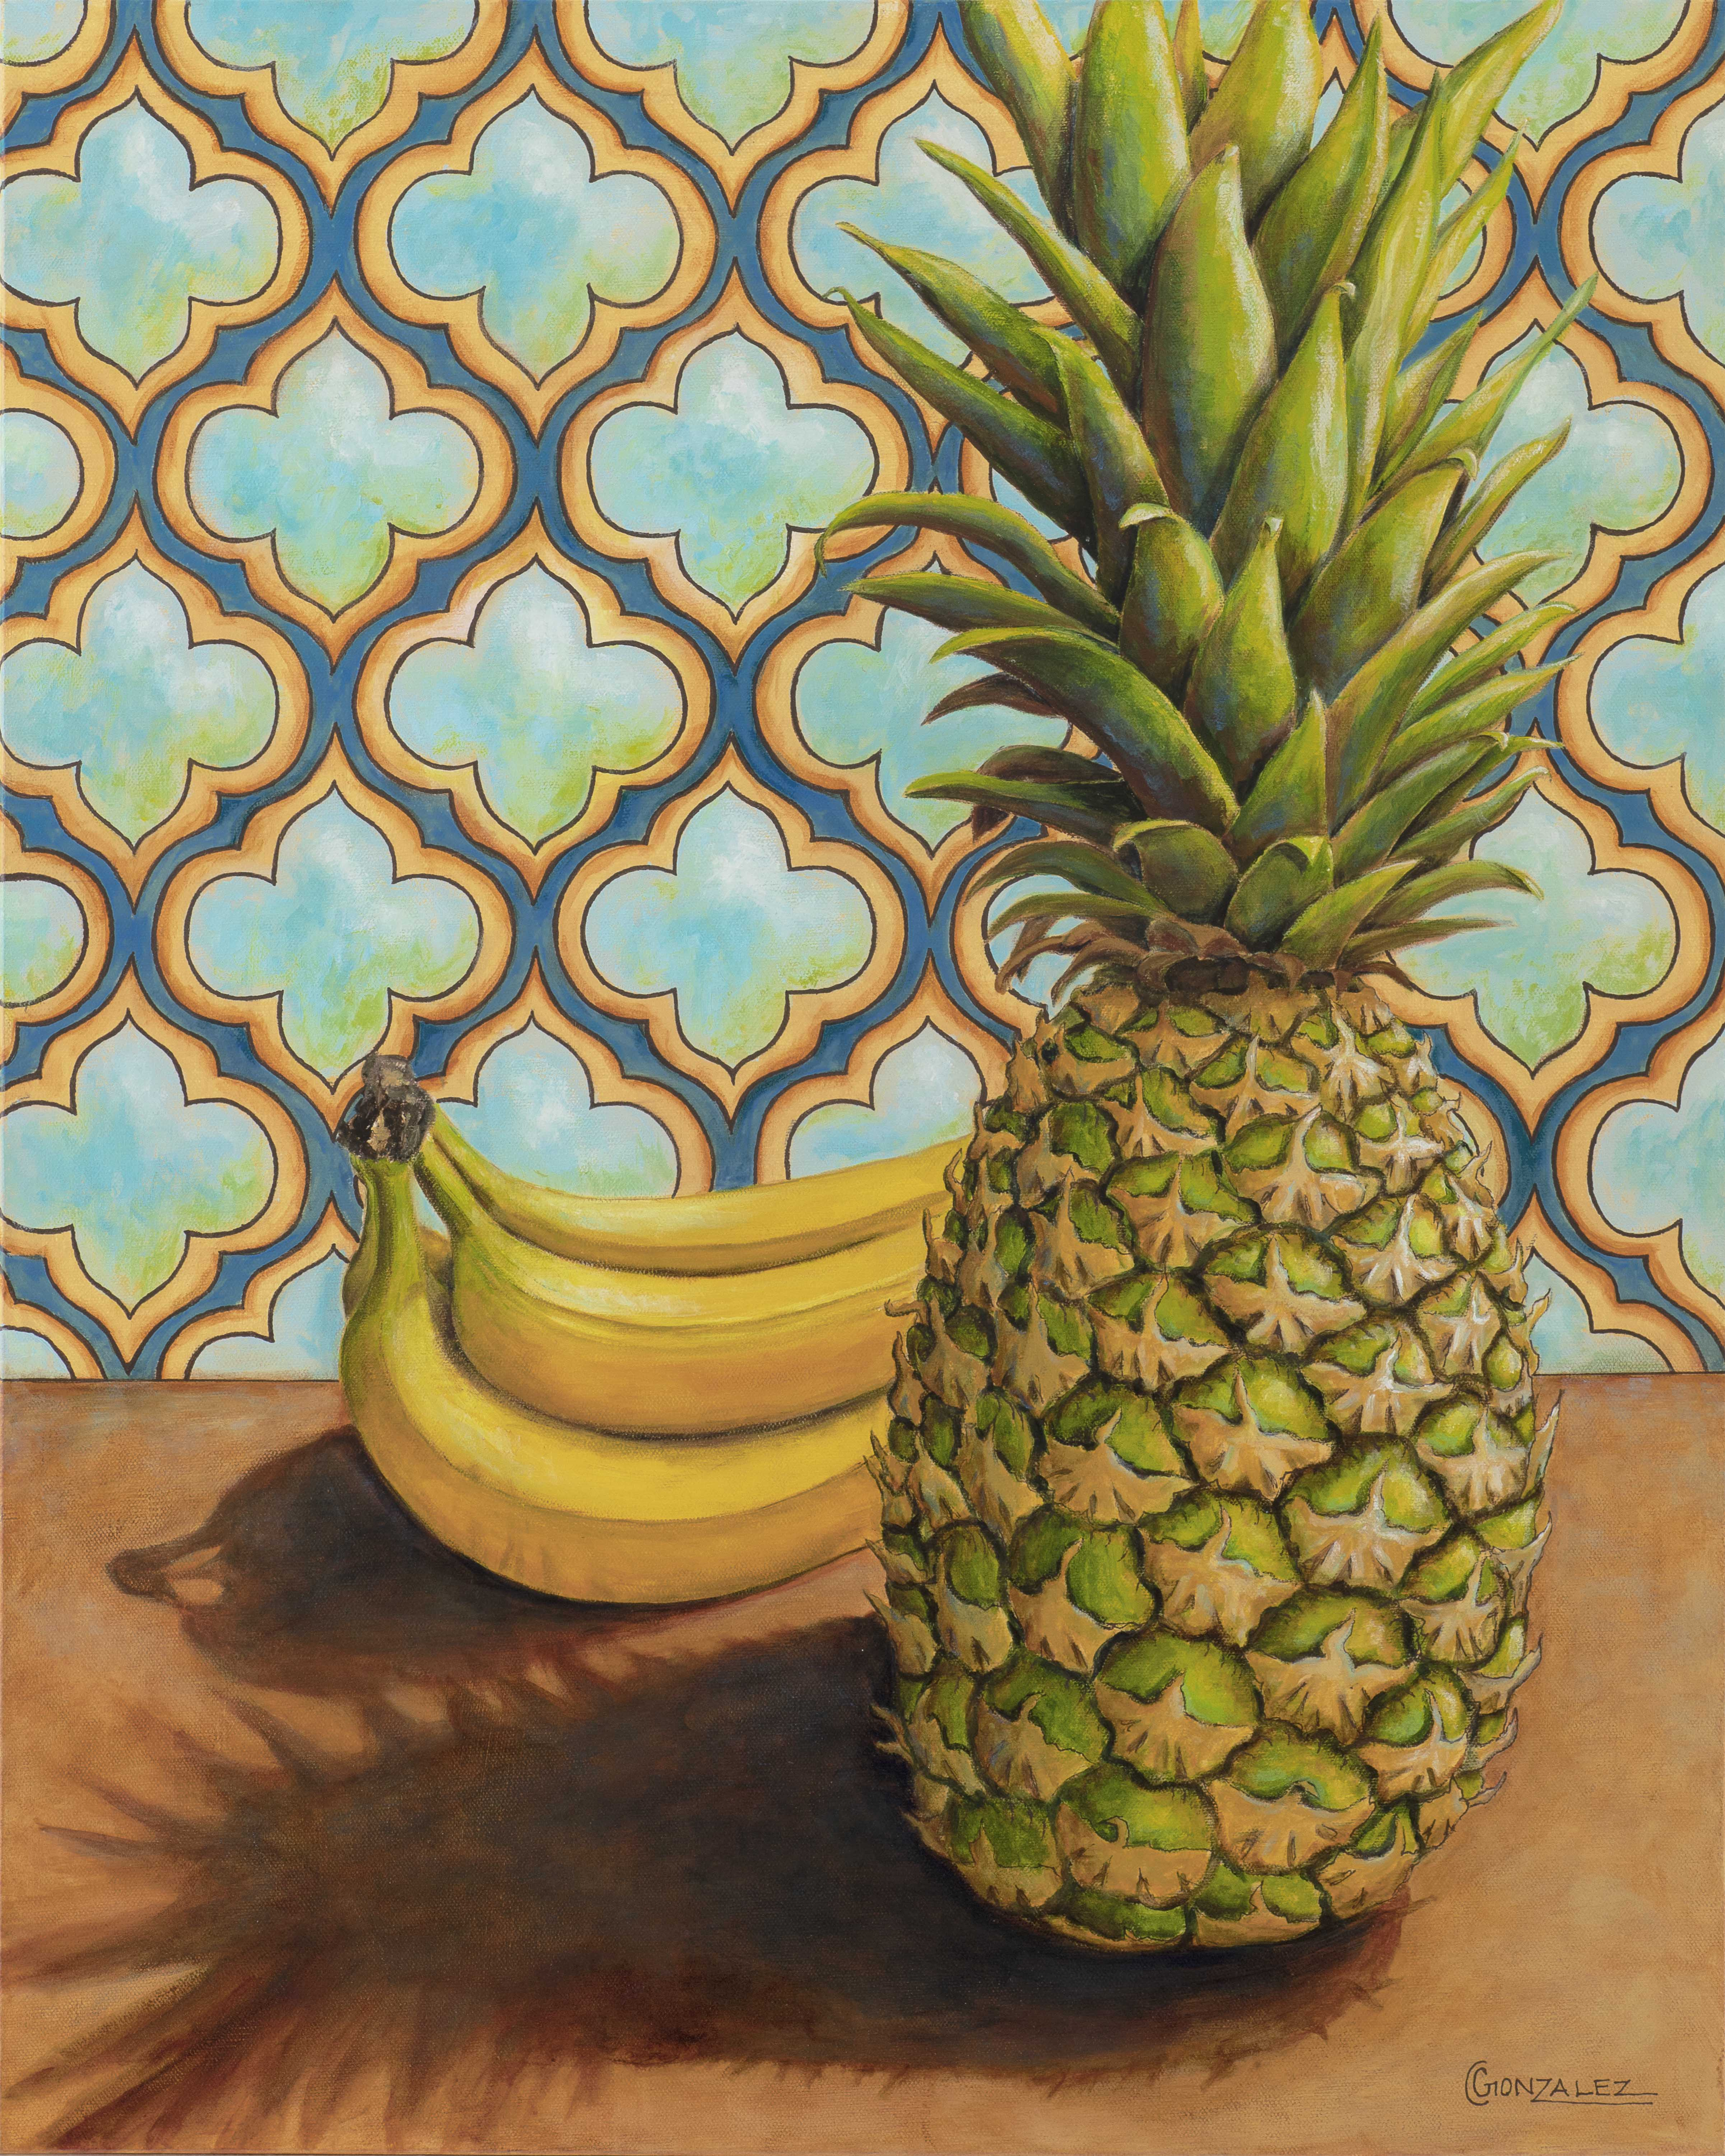 Carmen Gonzalez: 'banana ou anana', 2019 Acrylic Painting, Food. Painting done in acrylic on canvas.Certain items trigger significant emotions or memories.  When I see a pineapple, I am always transported back in time to when I was traveling in Hawaii with my husband on our honeymoon 23 years ago.  When we were there, we visited a pineapple plantation.  ...